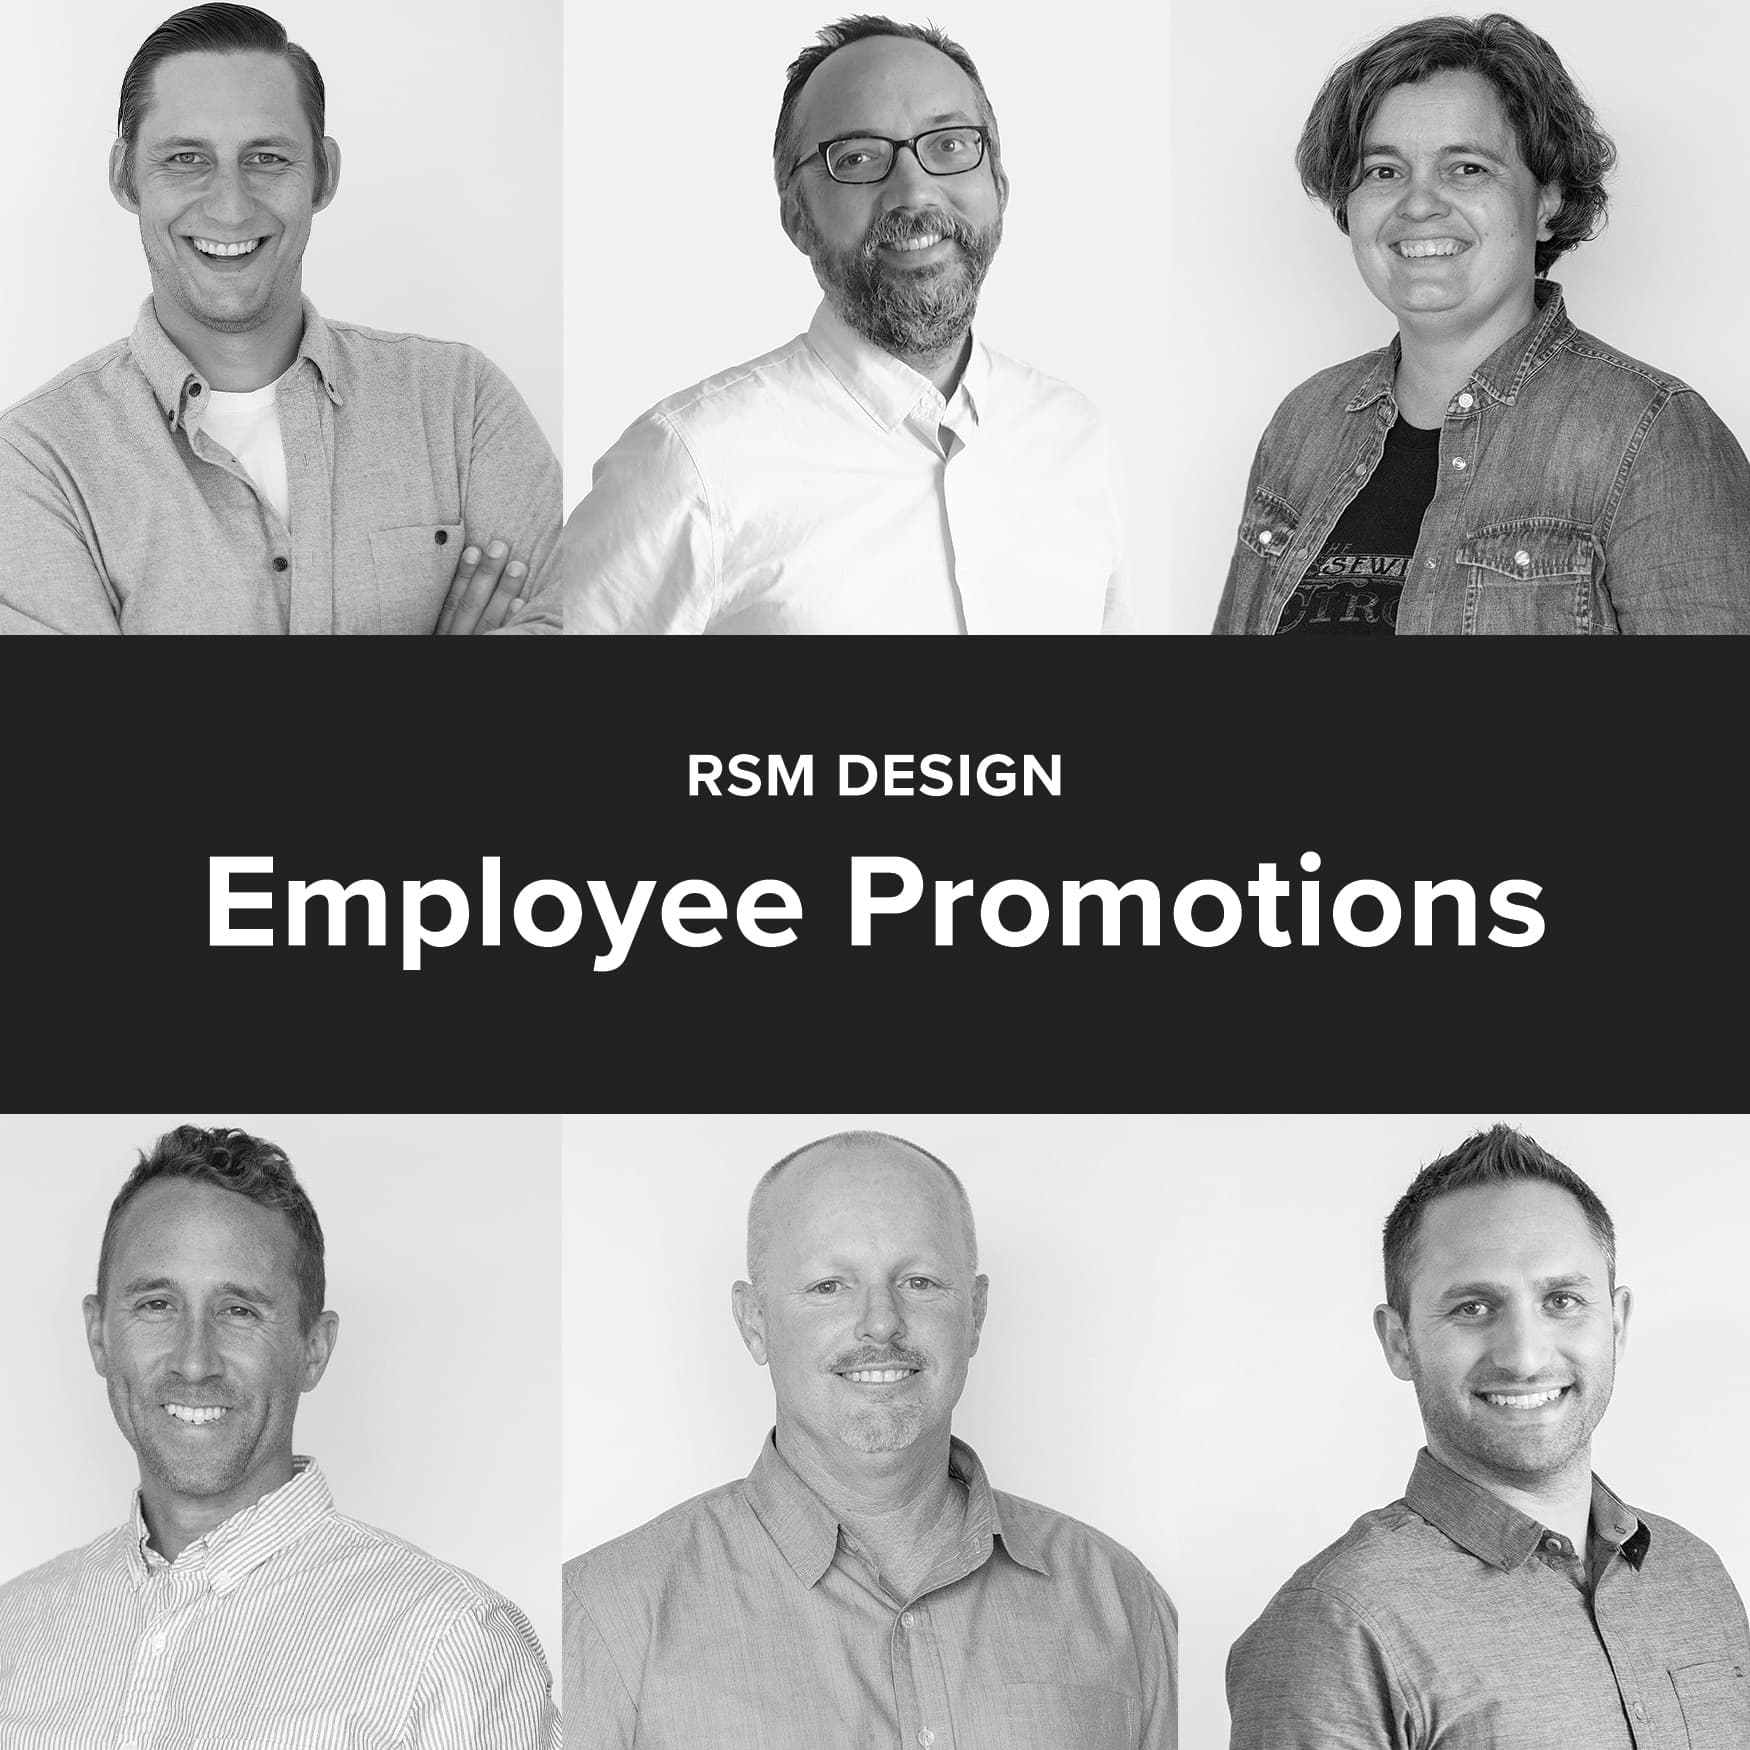 Black and white images of RSM Design employees who have received promotions this year.